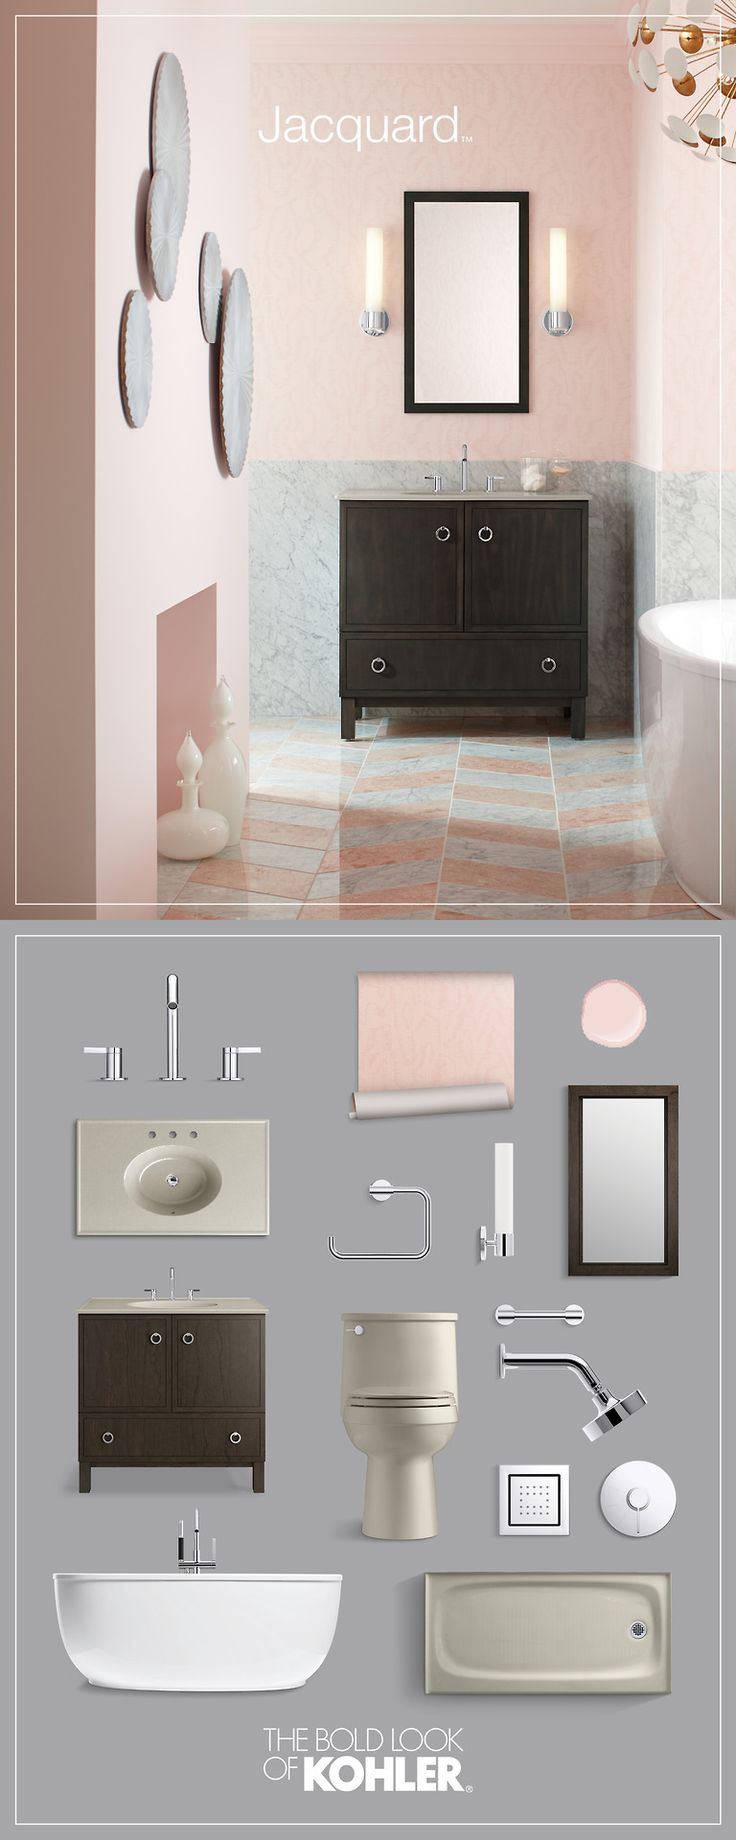 1000+ images about kohler | vanity collections on pinterest